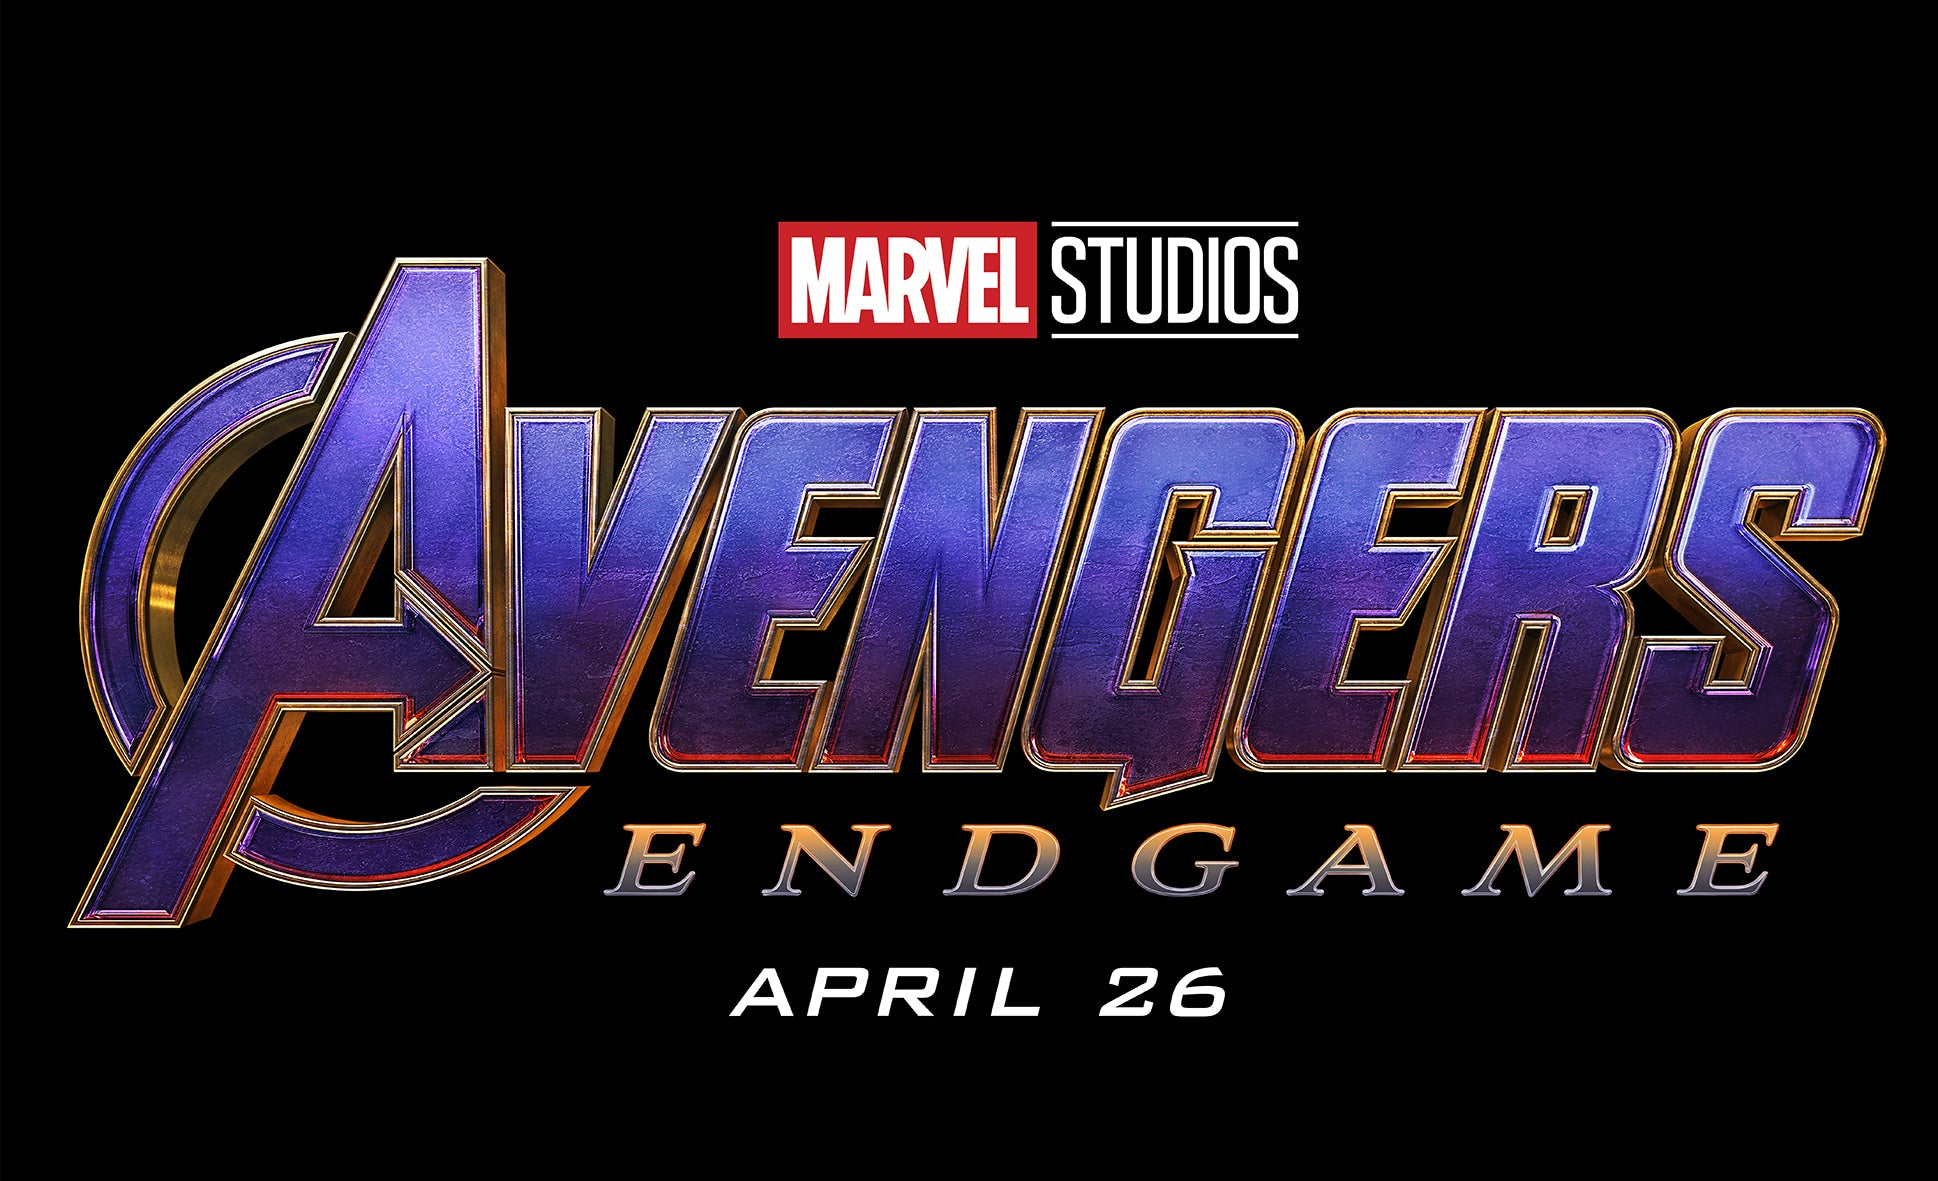 Avengers Endgame cinema release date April 26